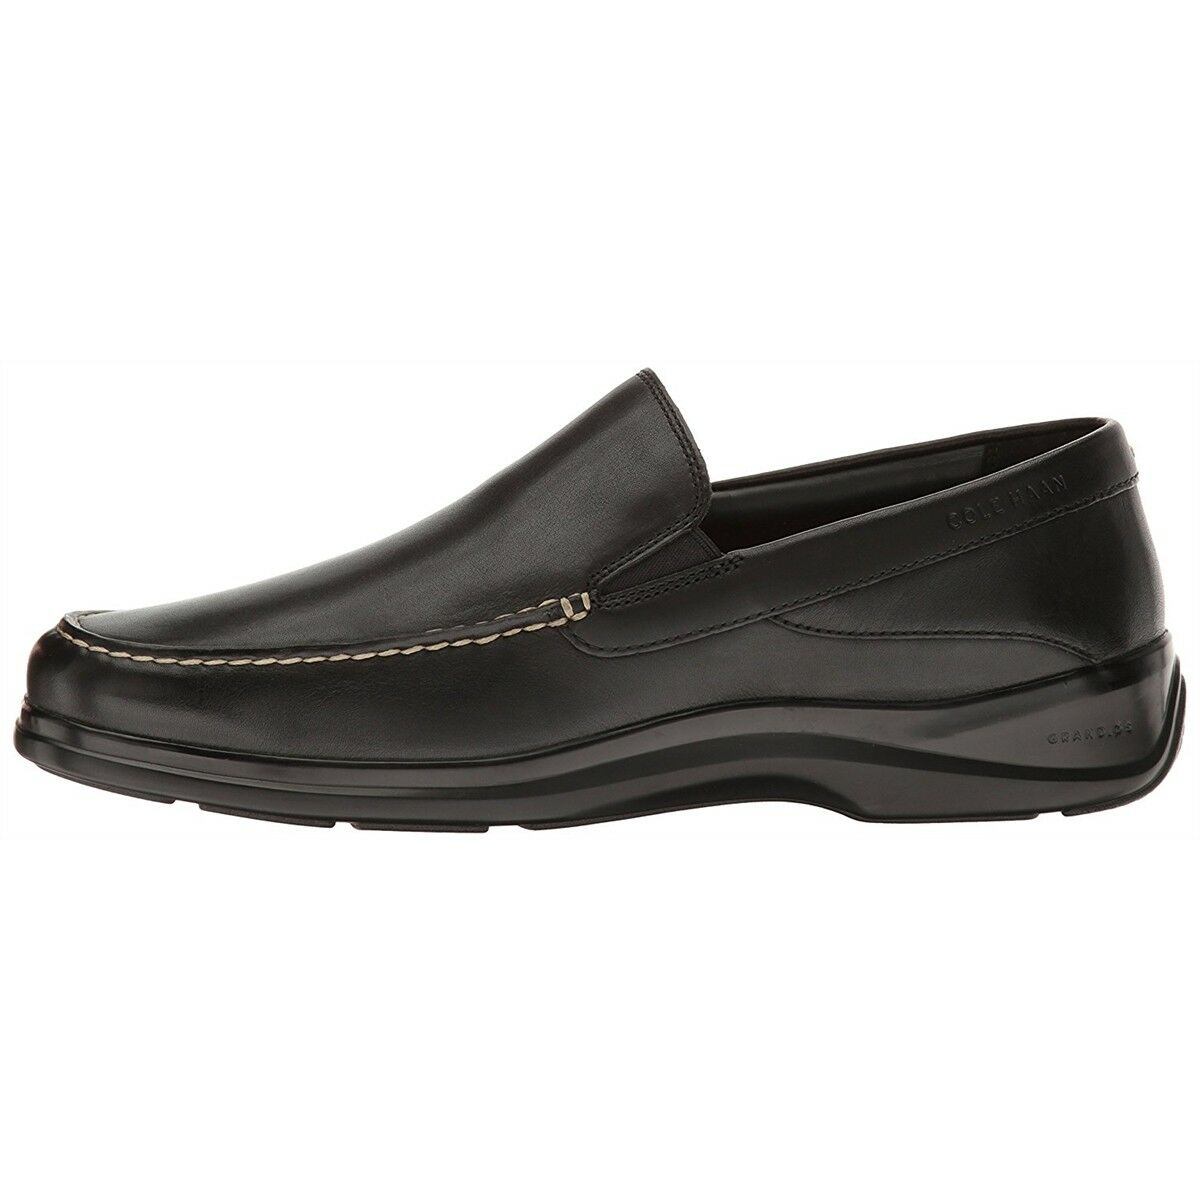 Uomo Cole Haan Santa Barbara Twin Gore II Slip Slip II On Loafers Medium / Wide Shoes NEW a6c03e